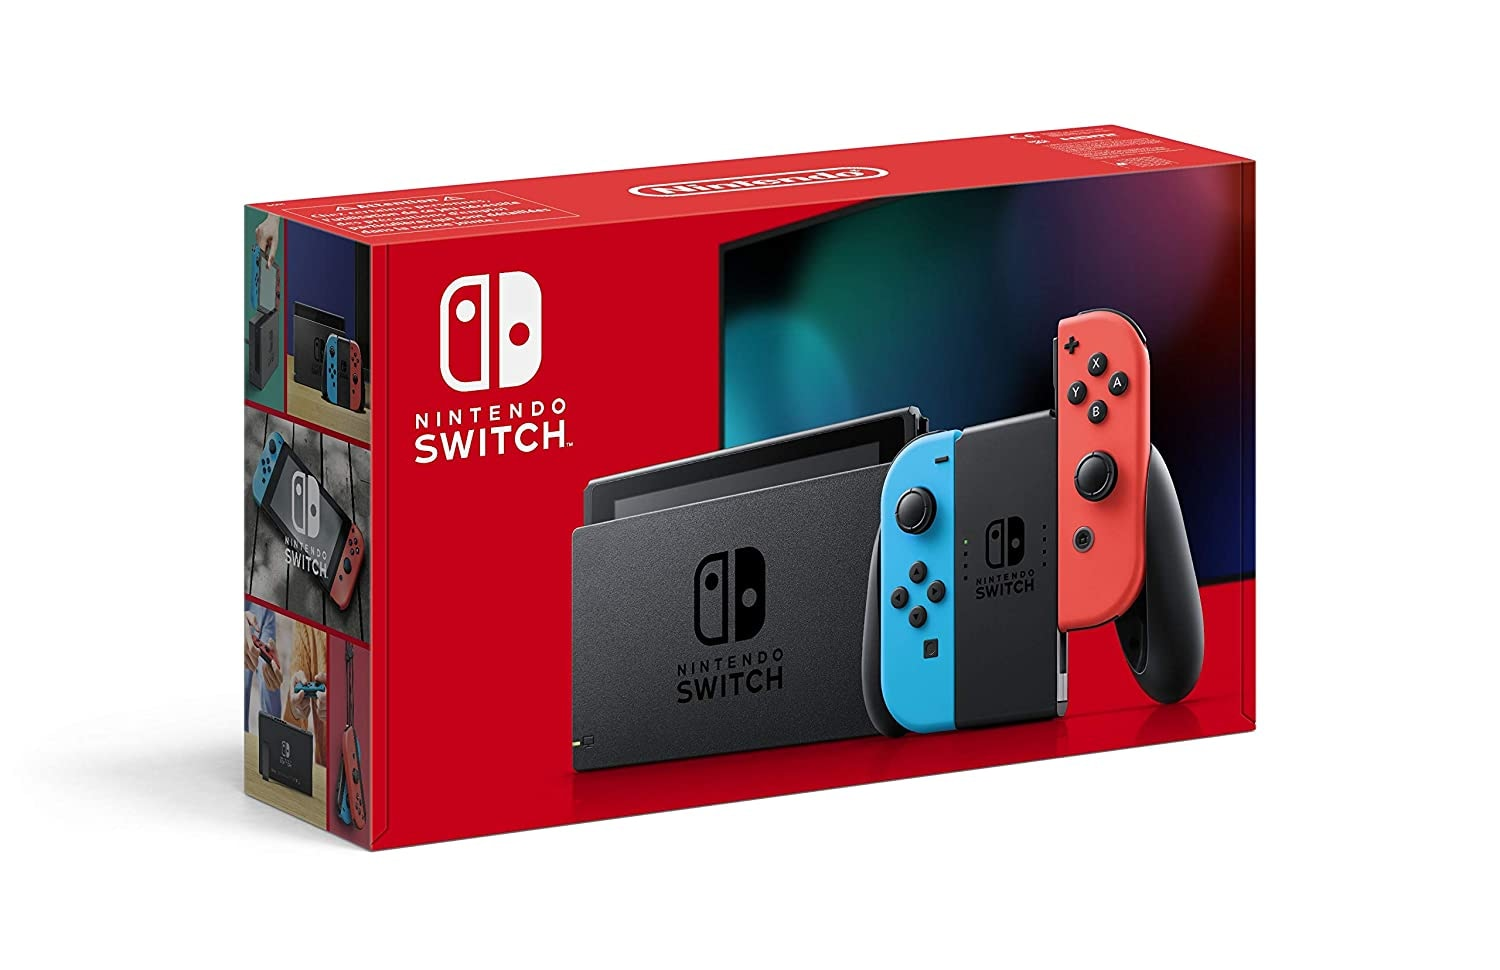 Nintendo Switch with Neon Blue and Neon Red Joy-Con Touchscreen LCD Display NVIDIA Custom Tegra Processor Carrying Case Multi-Colored - 1